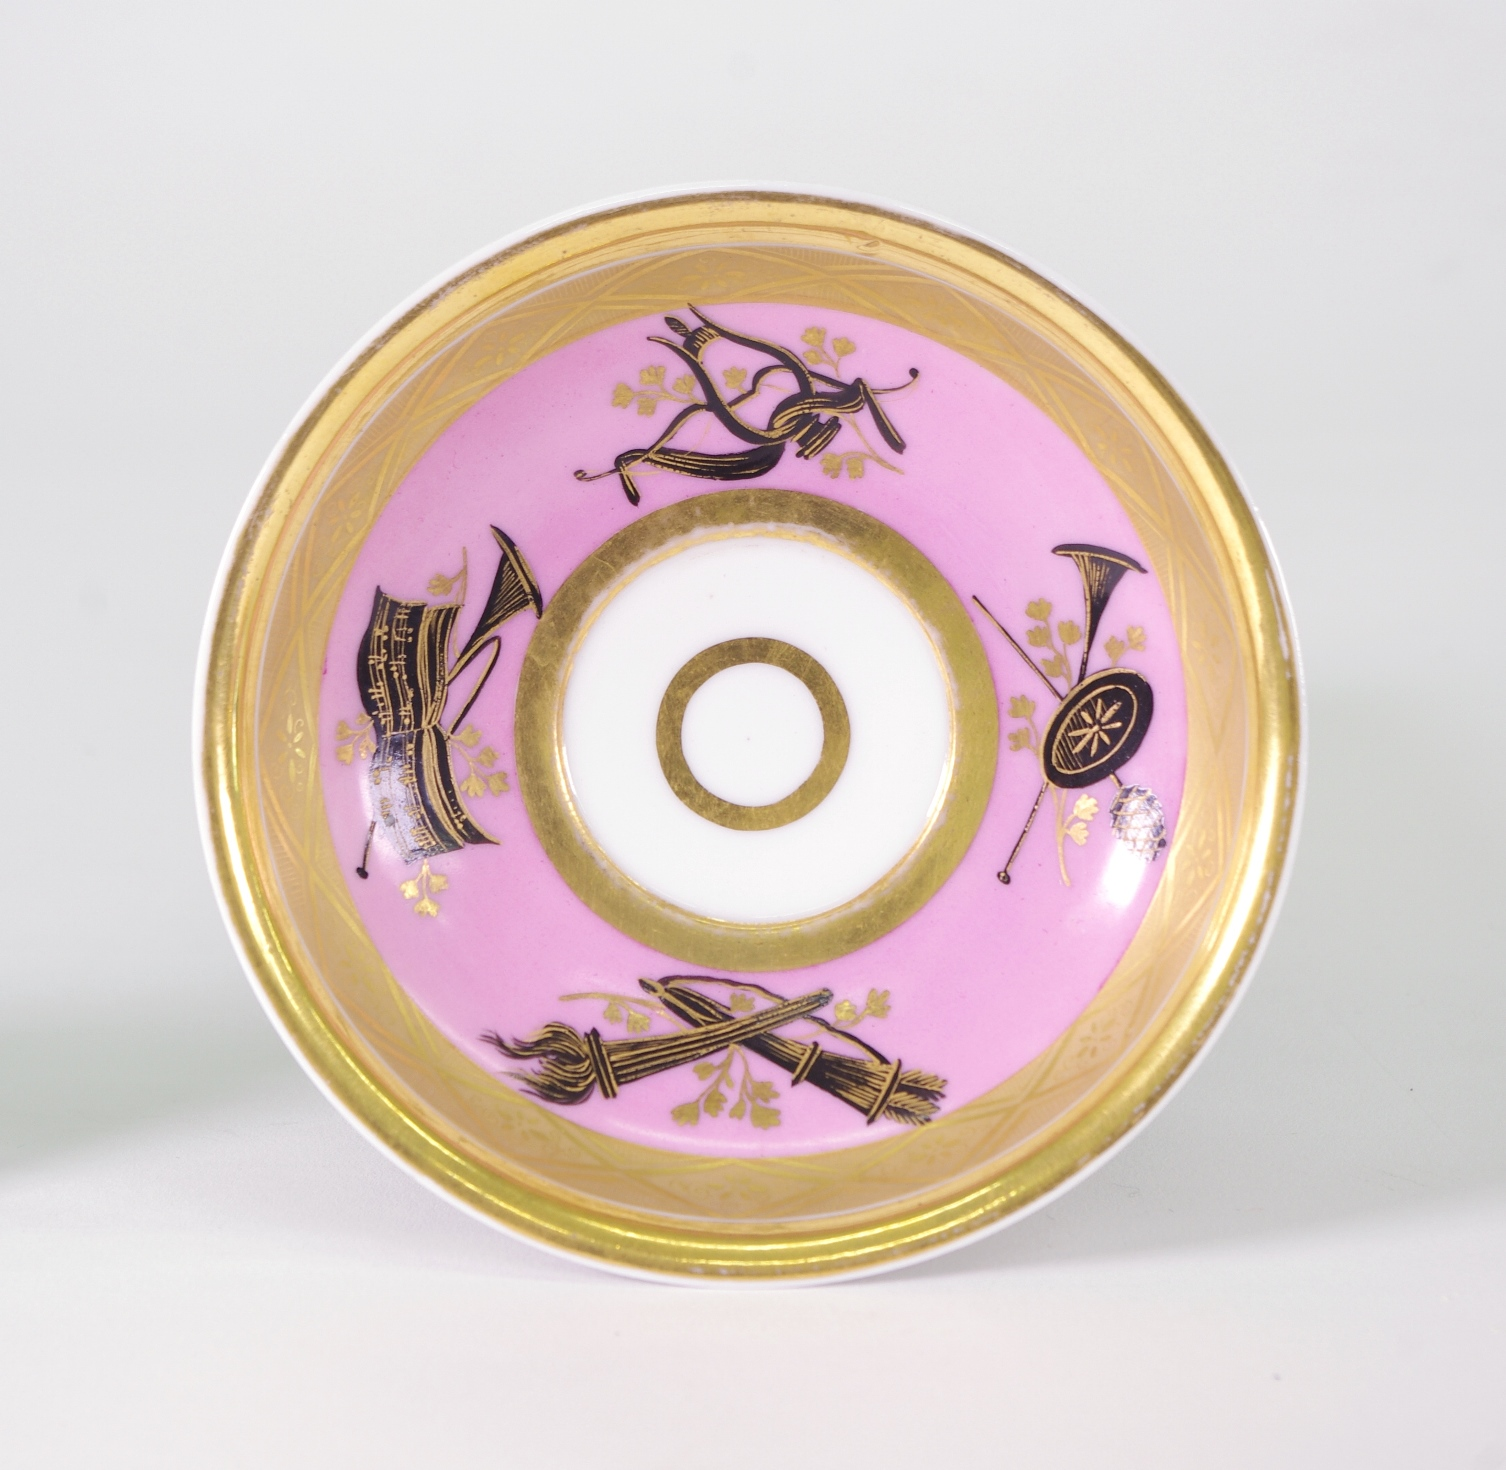 View 2: Popov Cup and Saucer, c. 1820